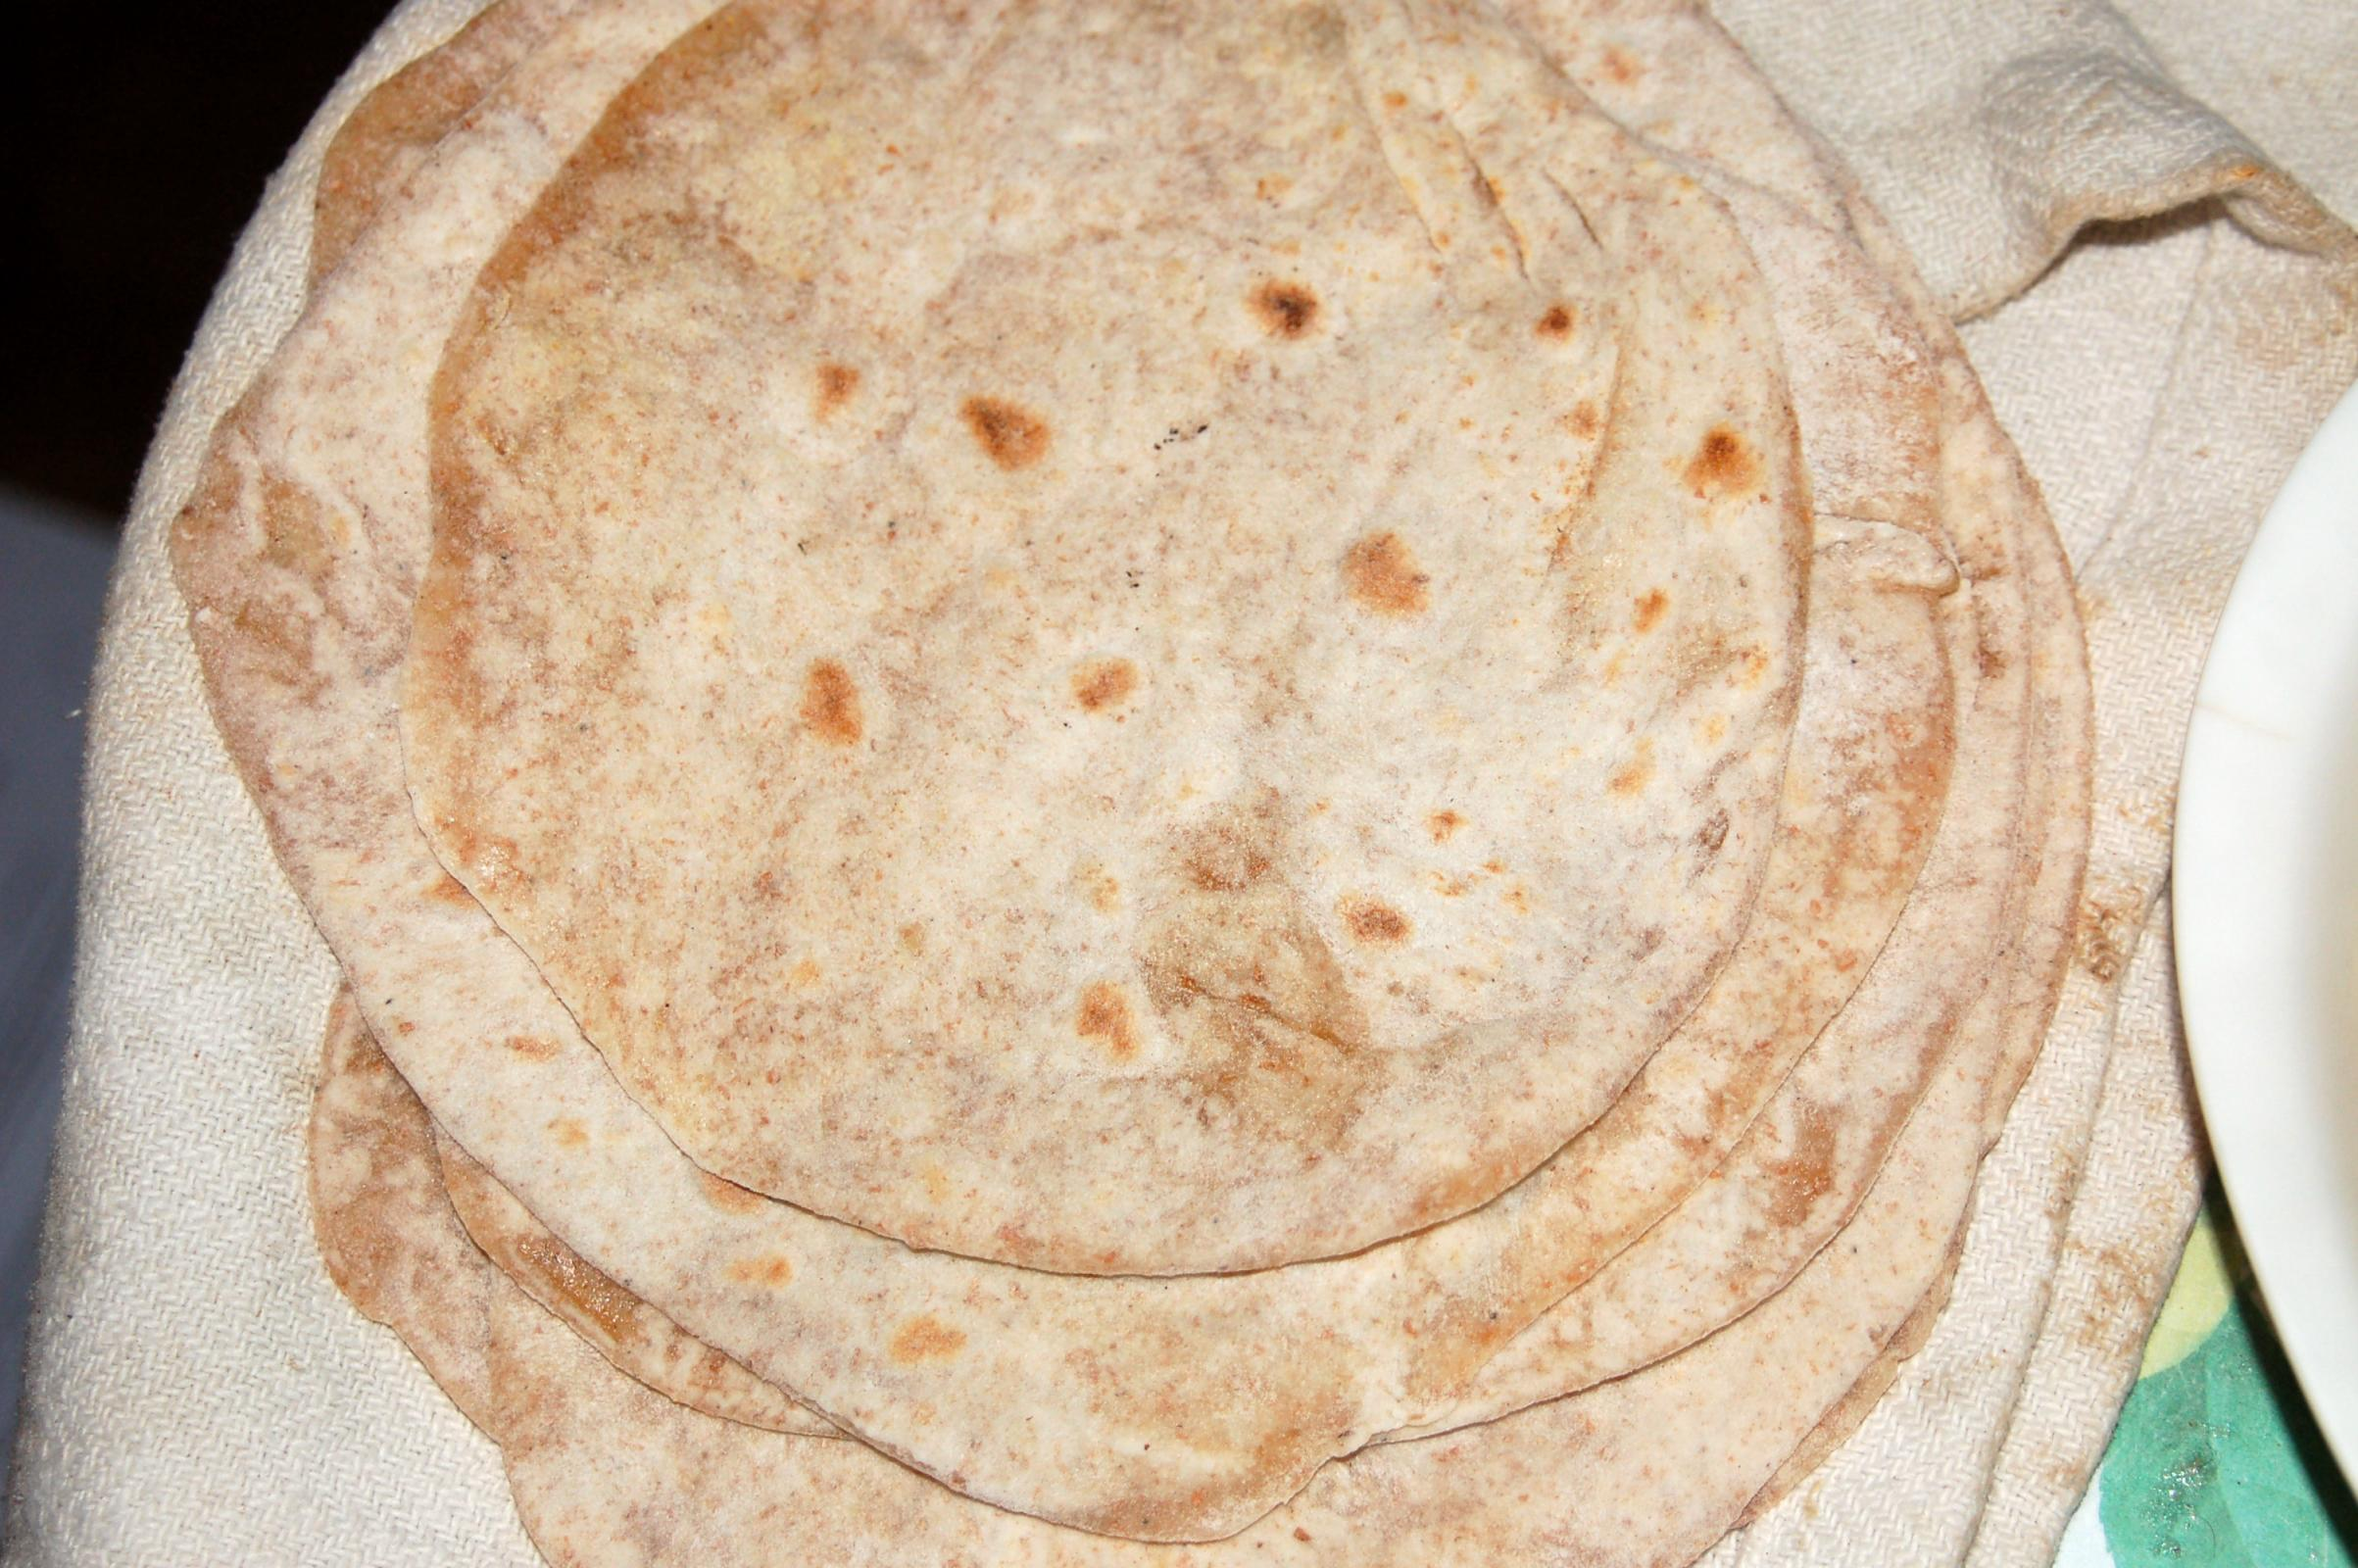 Some Chapati I made using Atta flour cooked on a traditional tawa